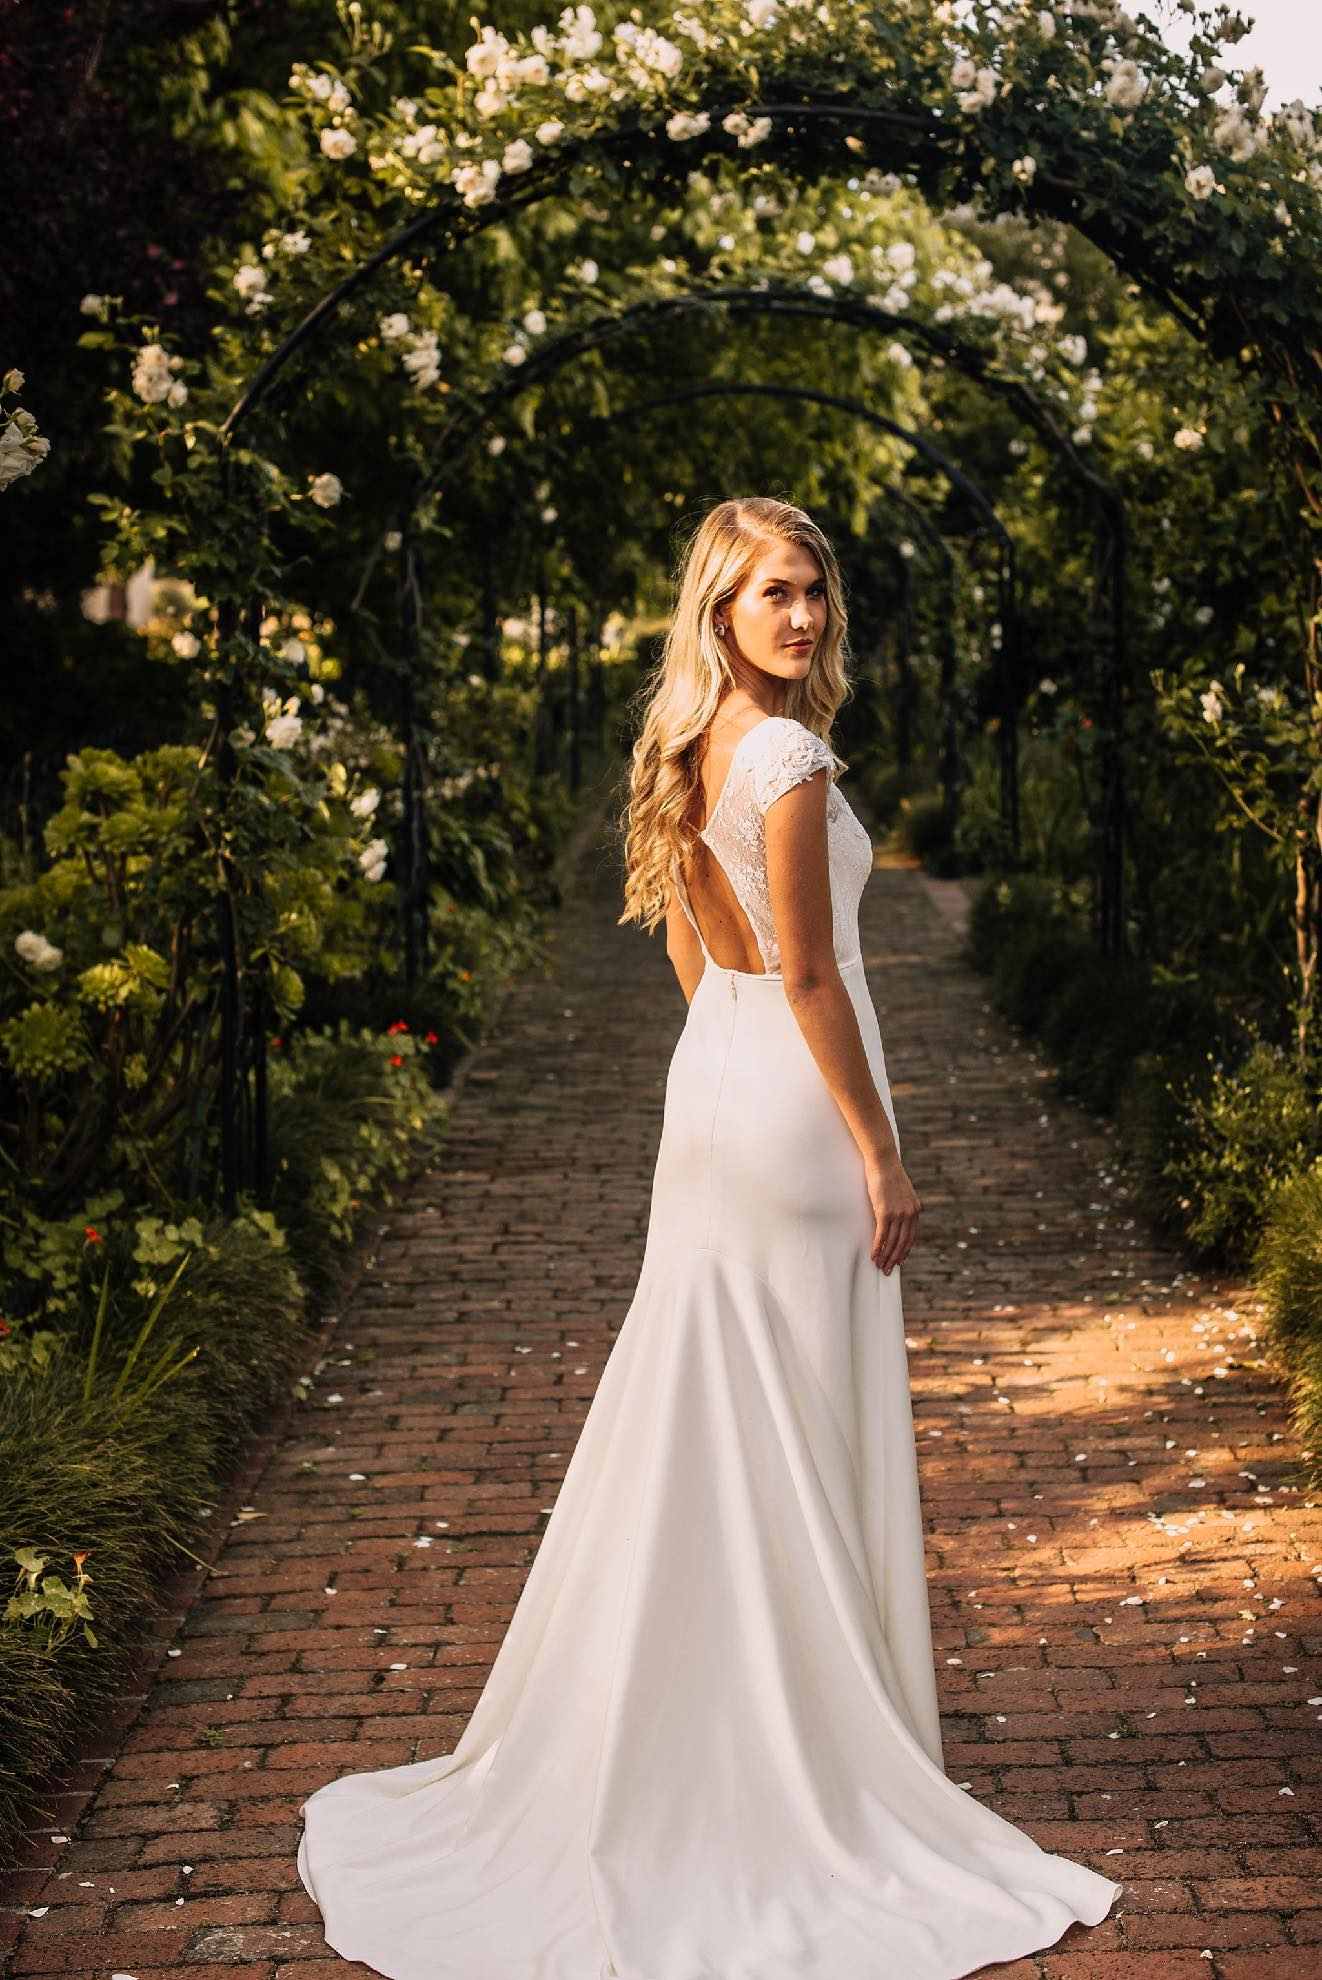 Angelique_Smith_Photography_Perfect_Match_Bridal-9